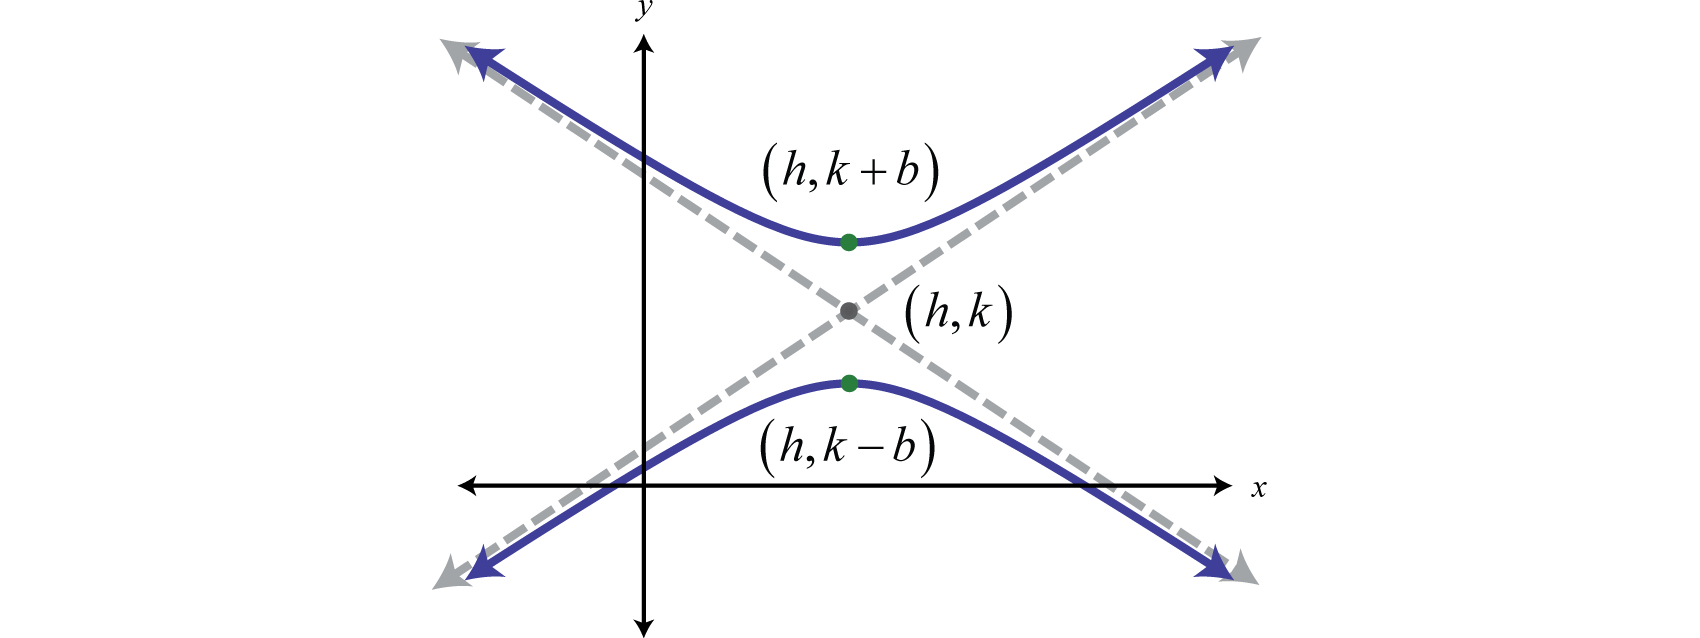 Hyperbolas here the center is falaconquin